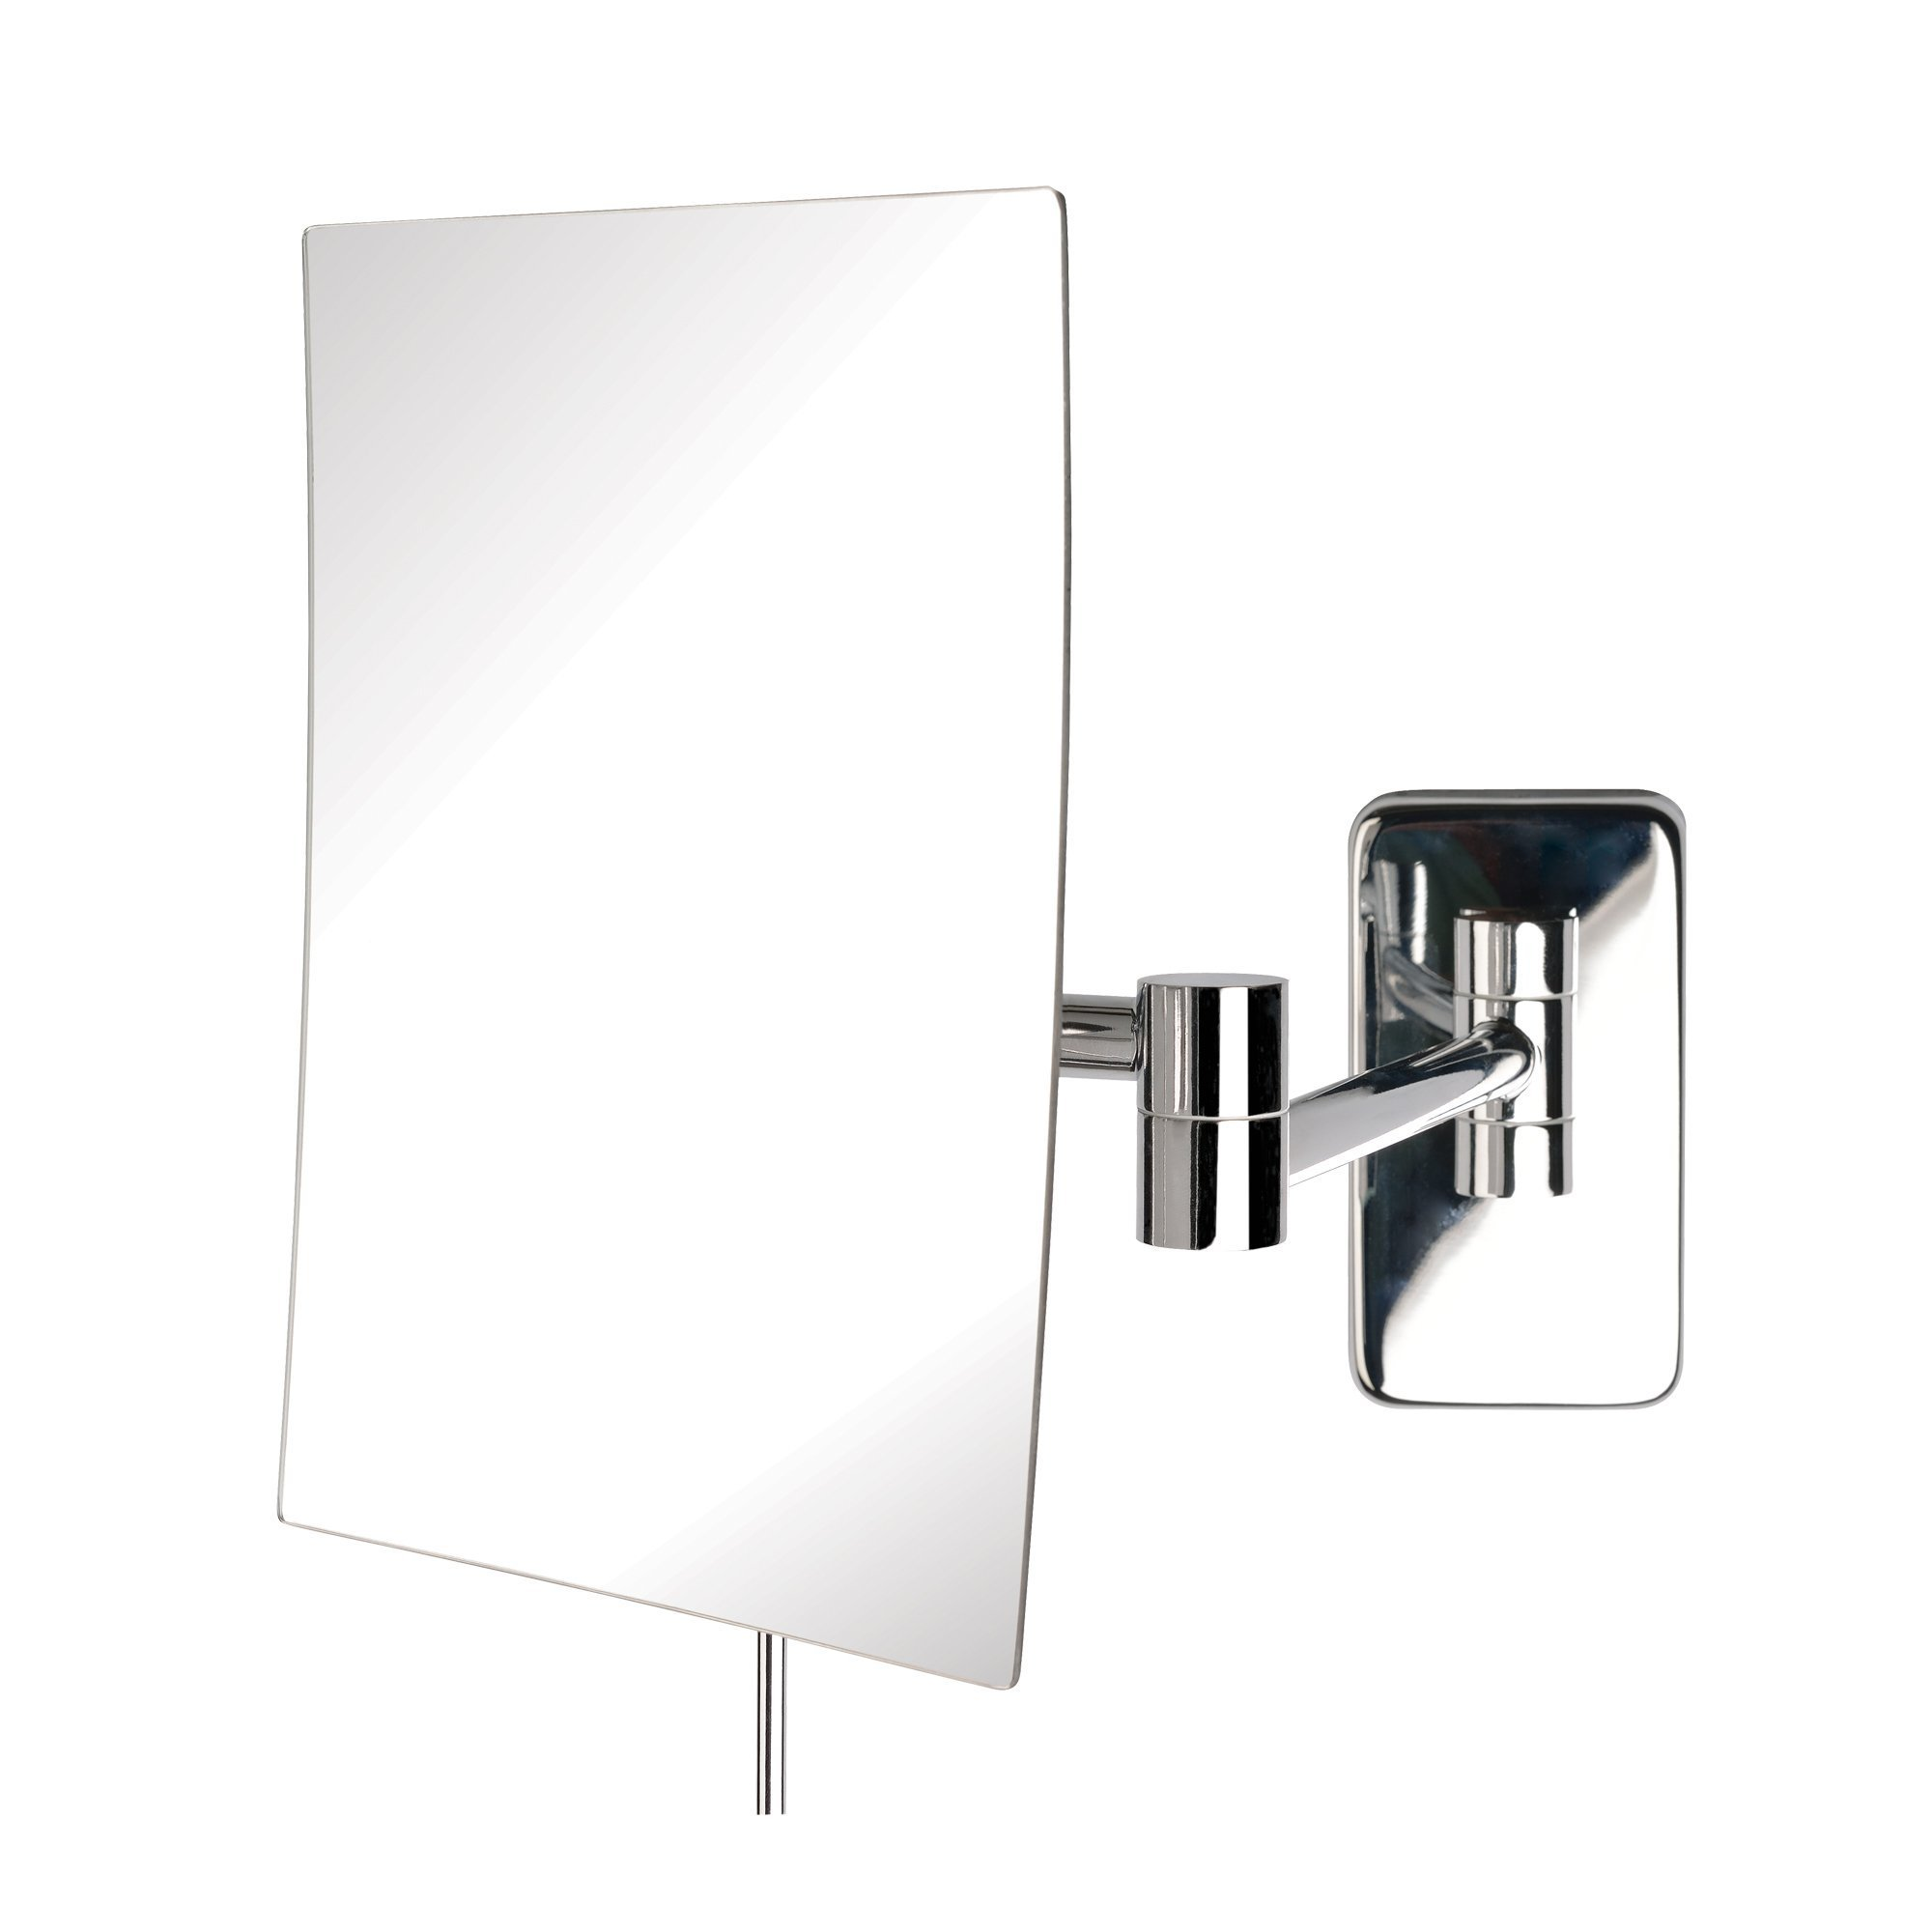 Jerdon JRT695C 6.5-Inch by 8.75-Inch Wall Mount Rectangular Makeup Mirror, Chrome Finish by Jerdon